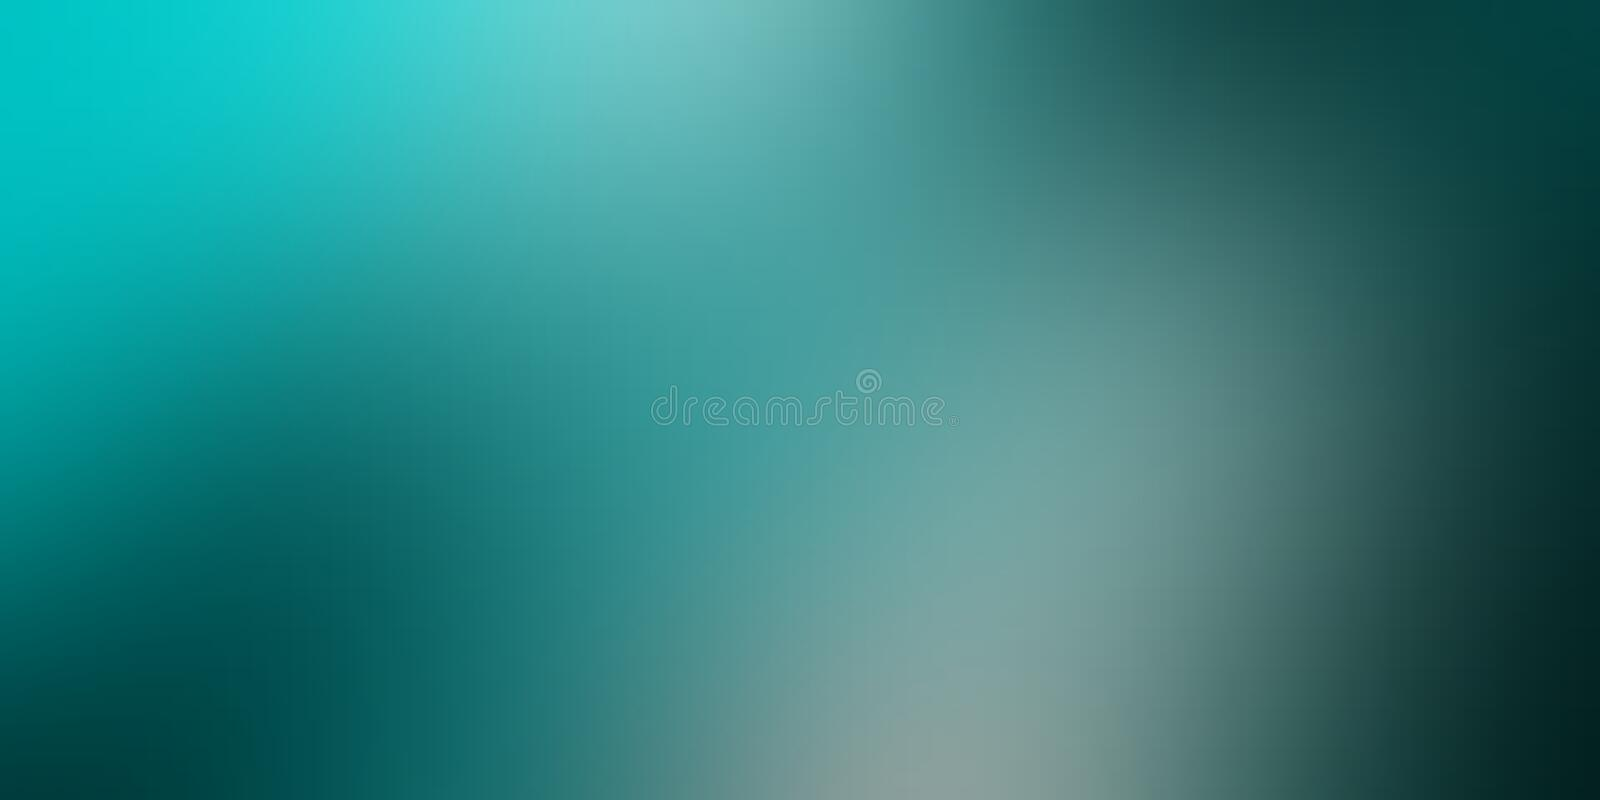 Blue blur abstract shaded background wallpaper, vector illustration. royalty free stock photos